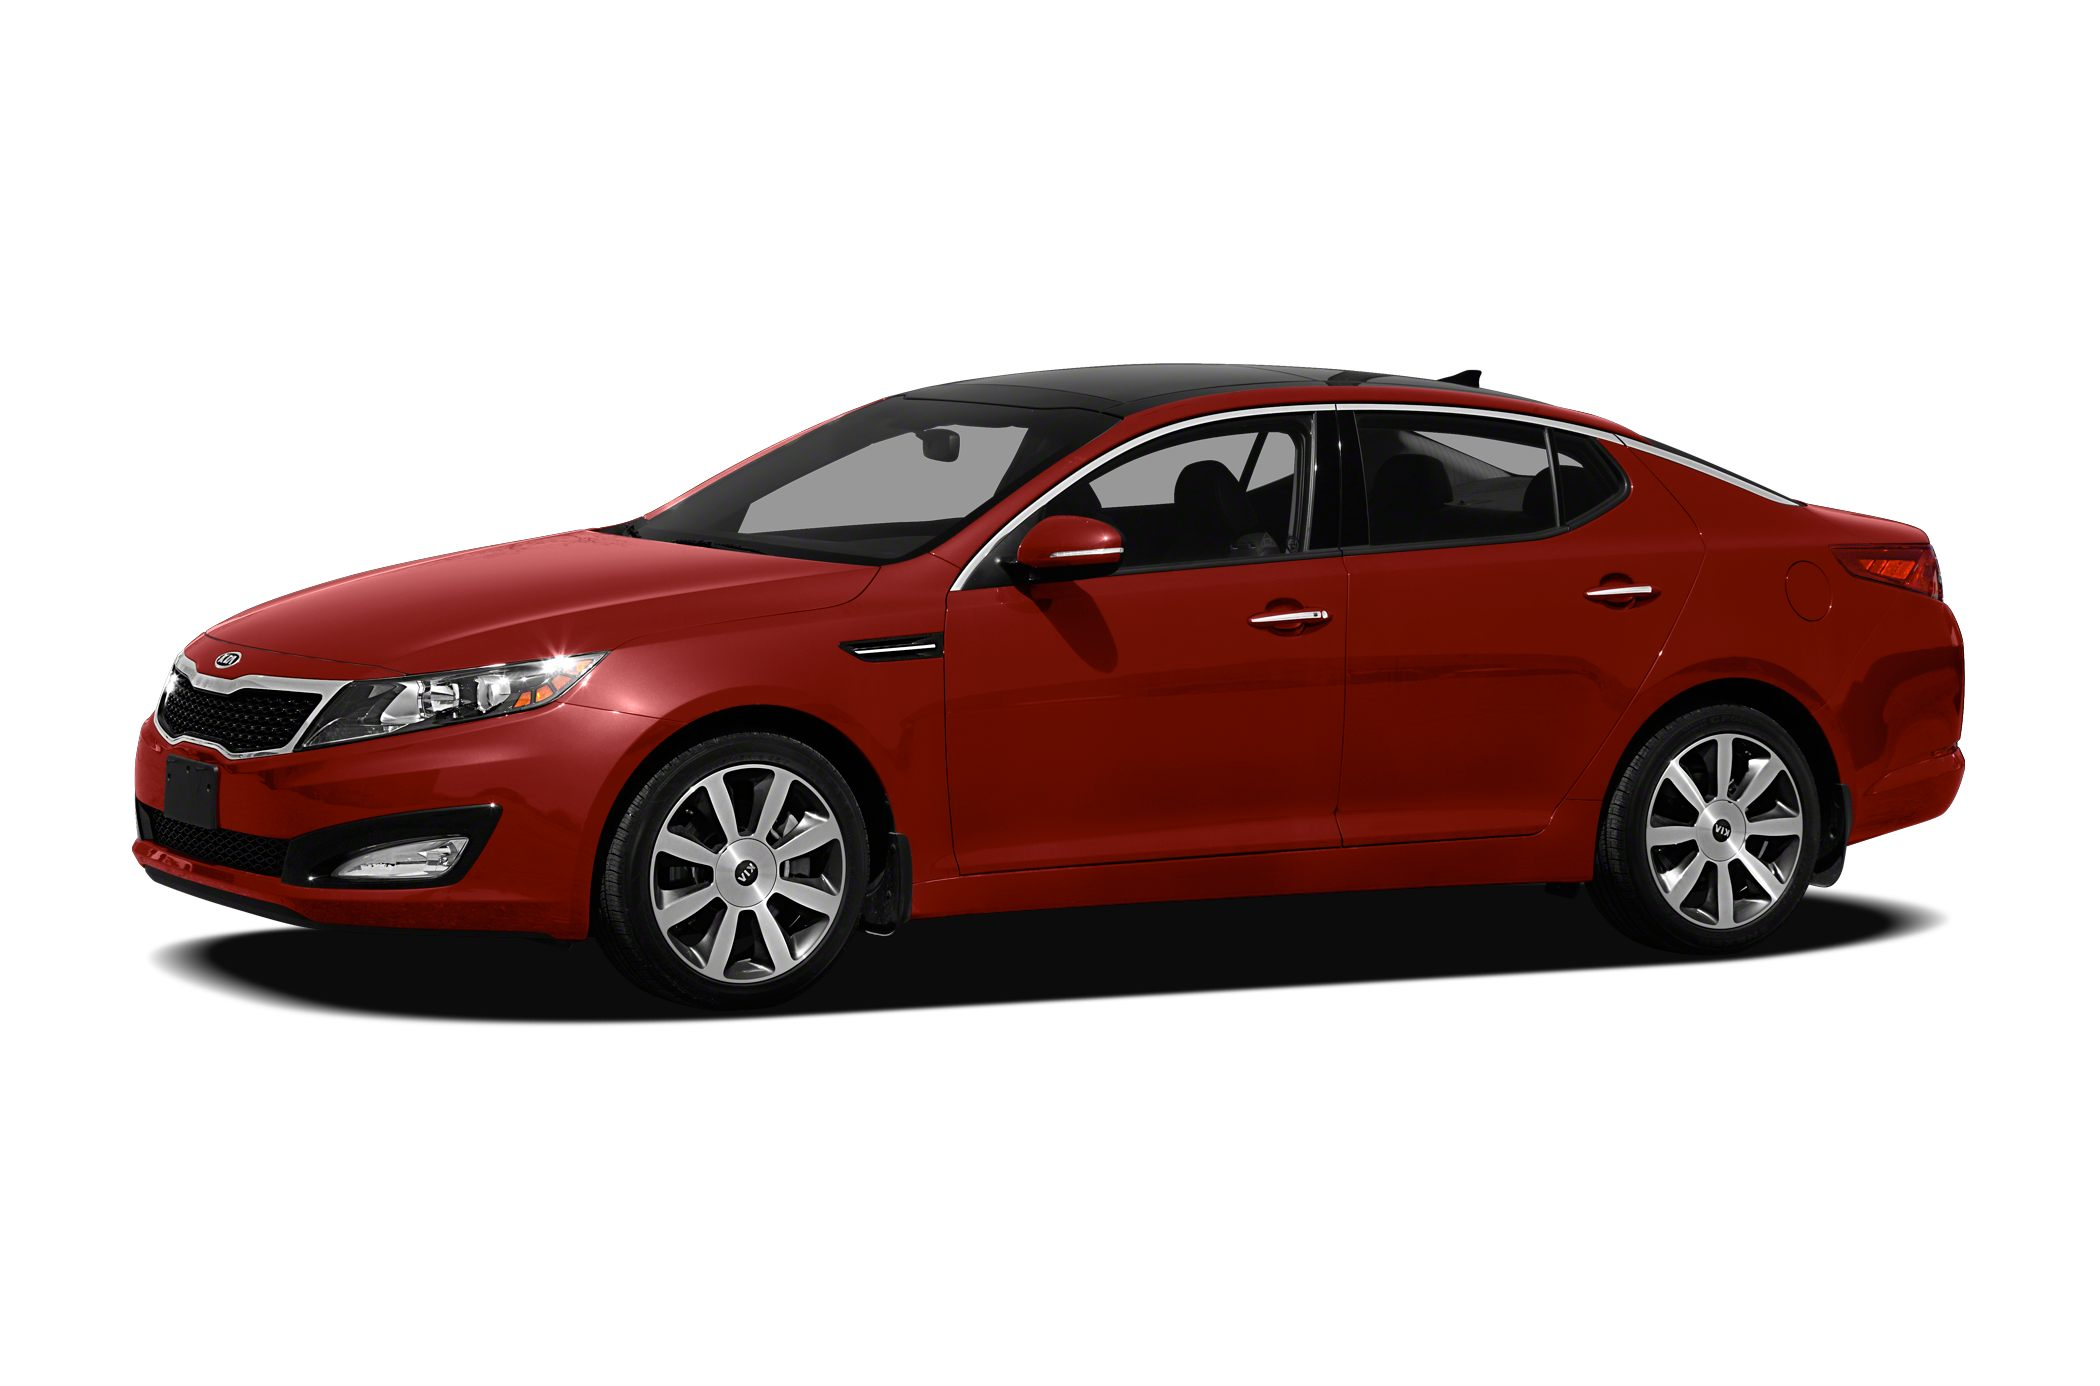 2011 Kia Optima LX Sedan for sale in Texarkana for $11,855 with 115,812 miles.